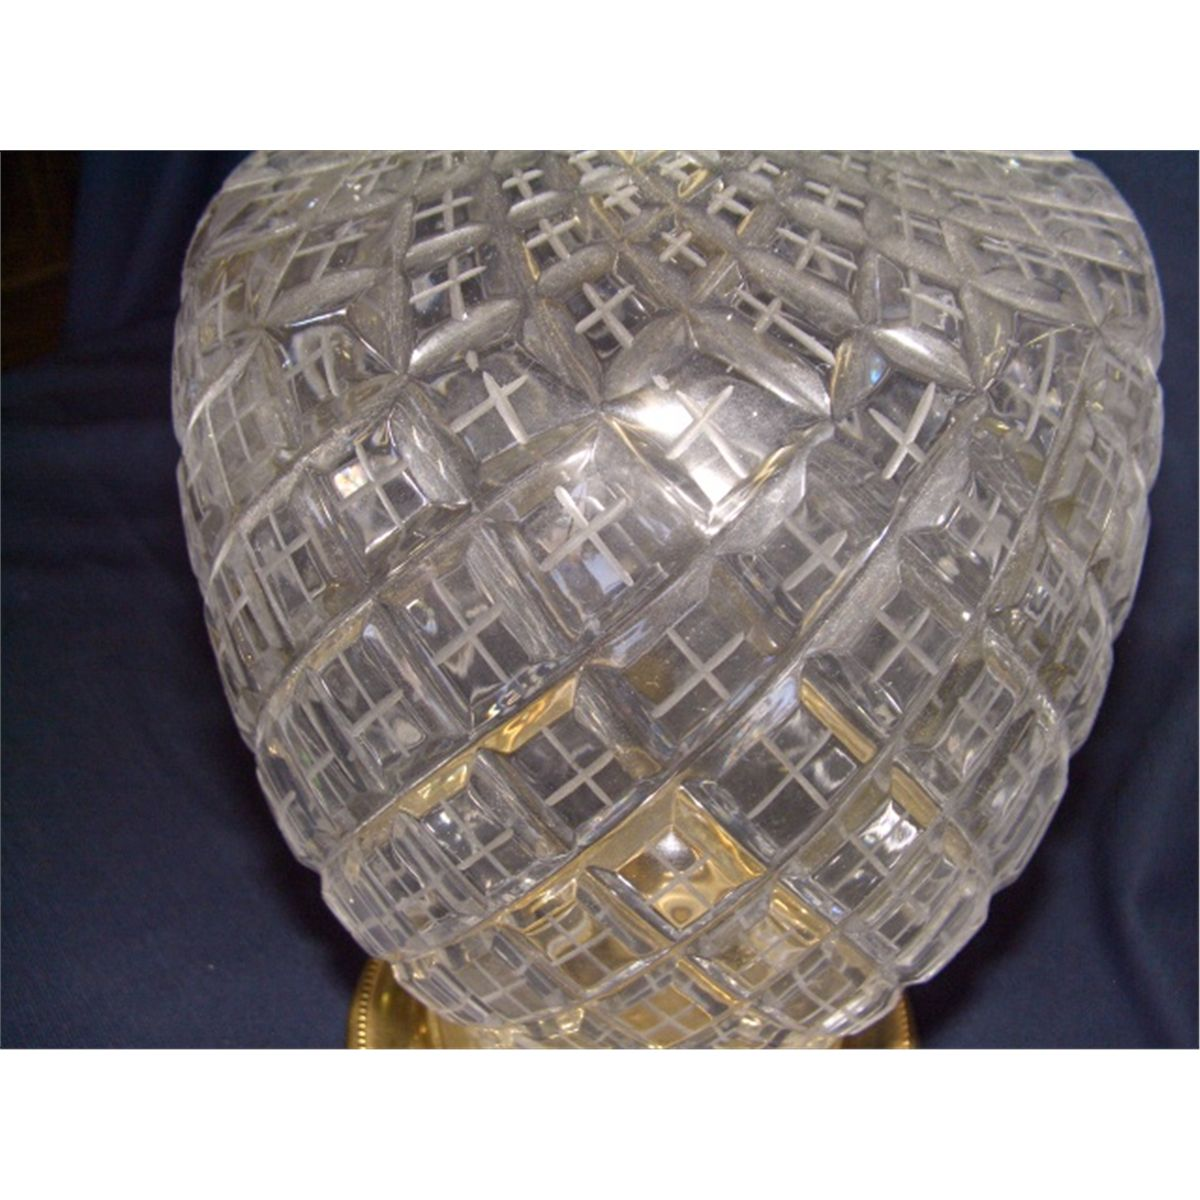 2 Piece Matching Cut Crystal Glass Table Lamps Waterford